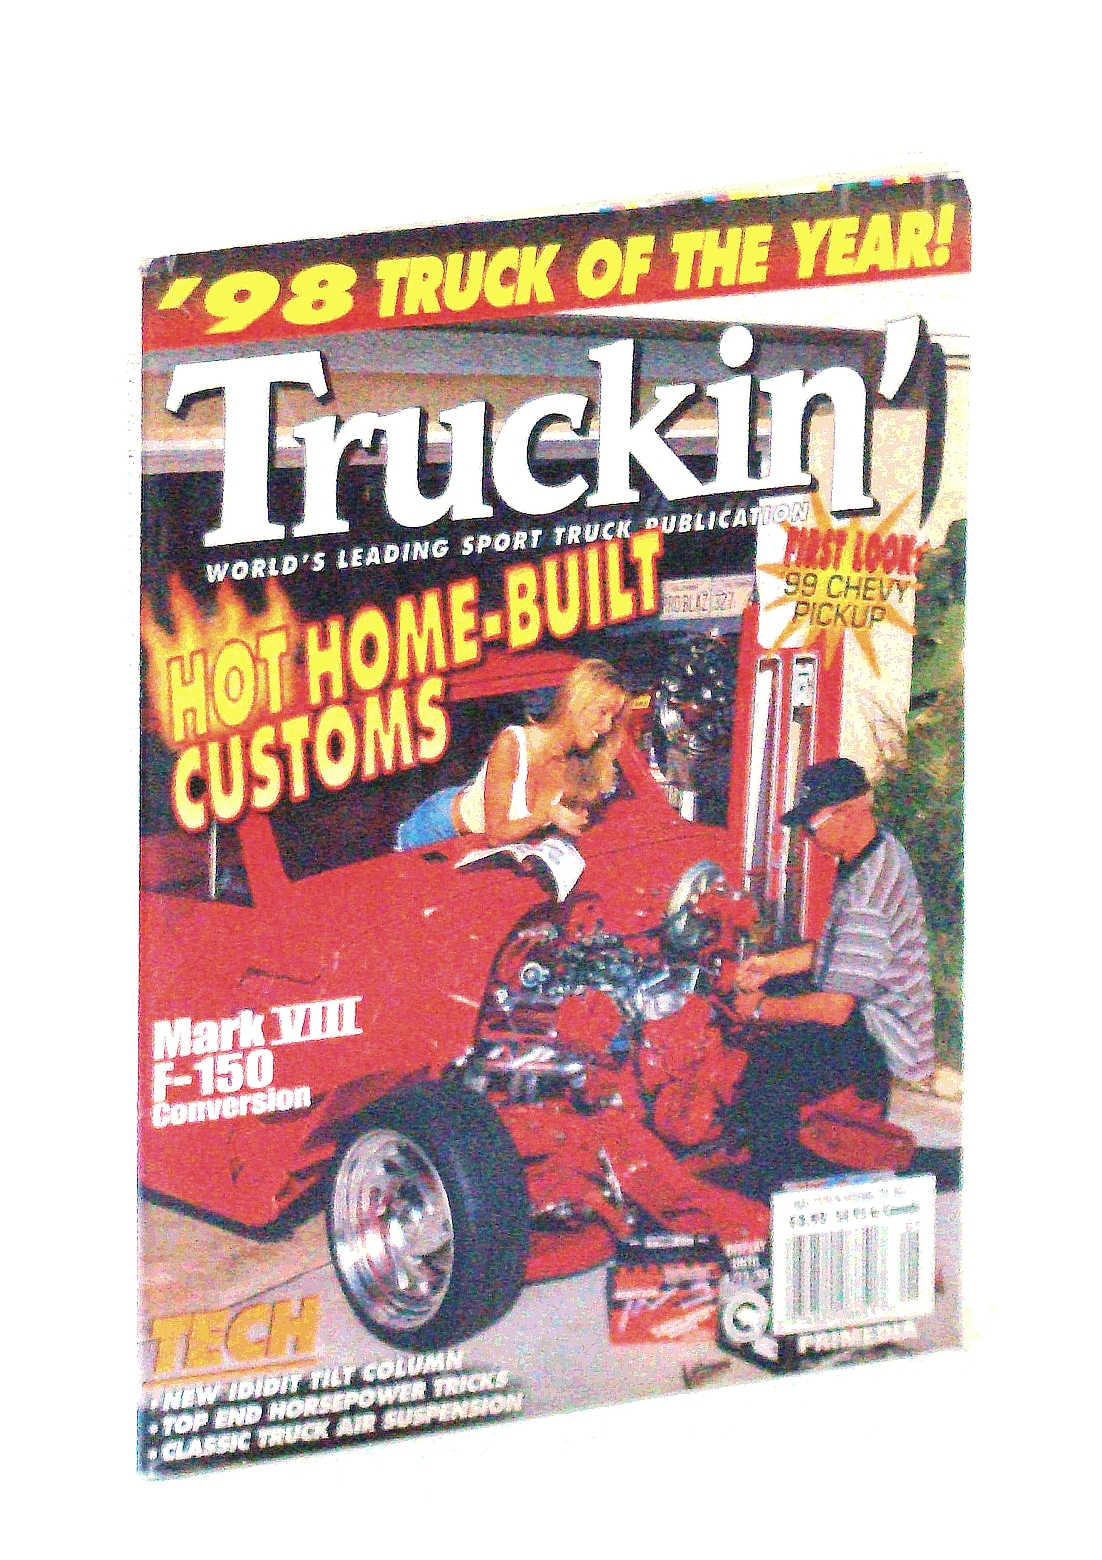 Image for TRUCKIN' Magazine (May 1998 volume 24 #5)